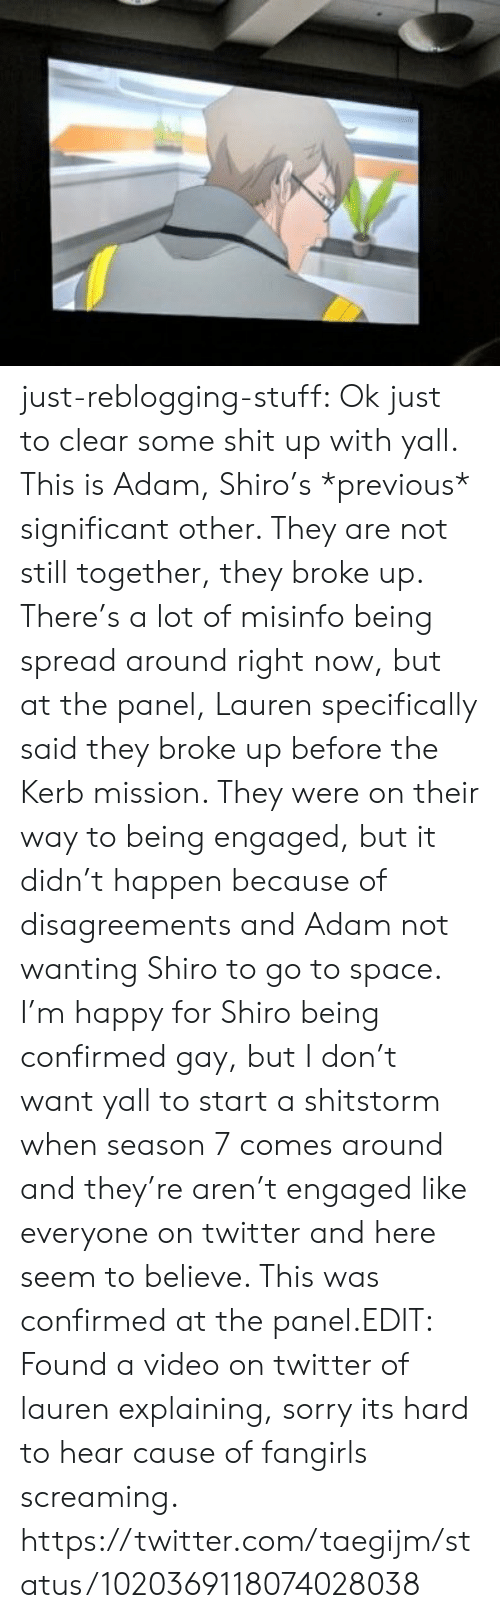 Shiro: just-reblogging-stuff:  Ok just to clear some shit up with yall. This is Adam, Shiro's *previous* significant other. They are not still together, they broke up. There's a lot of misinfo being spread around right now, but at the panel, Lauren specifically said they broke up before the Kerb mission. They were on their way to being engaged, but it didn't happen because of disagreements and Adam not wanting Shiro to go to space. I'm happy for Shiro being confirmed gay, but I don't want yall to start a shitstorm when season 7 comes around and they're aren't engaged like everyone on twitter and here seem to believe. This was confirmed at the panel.EDIT: Found a video on twitter of lauren explaining, sorry its hard to hear cause of fangirls screaming. https://twitter.com/taegijm/status/1020369118074028038